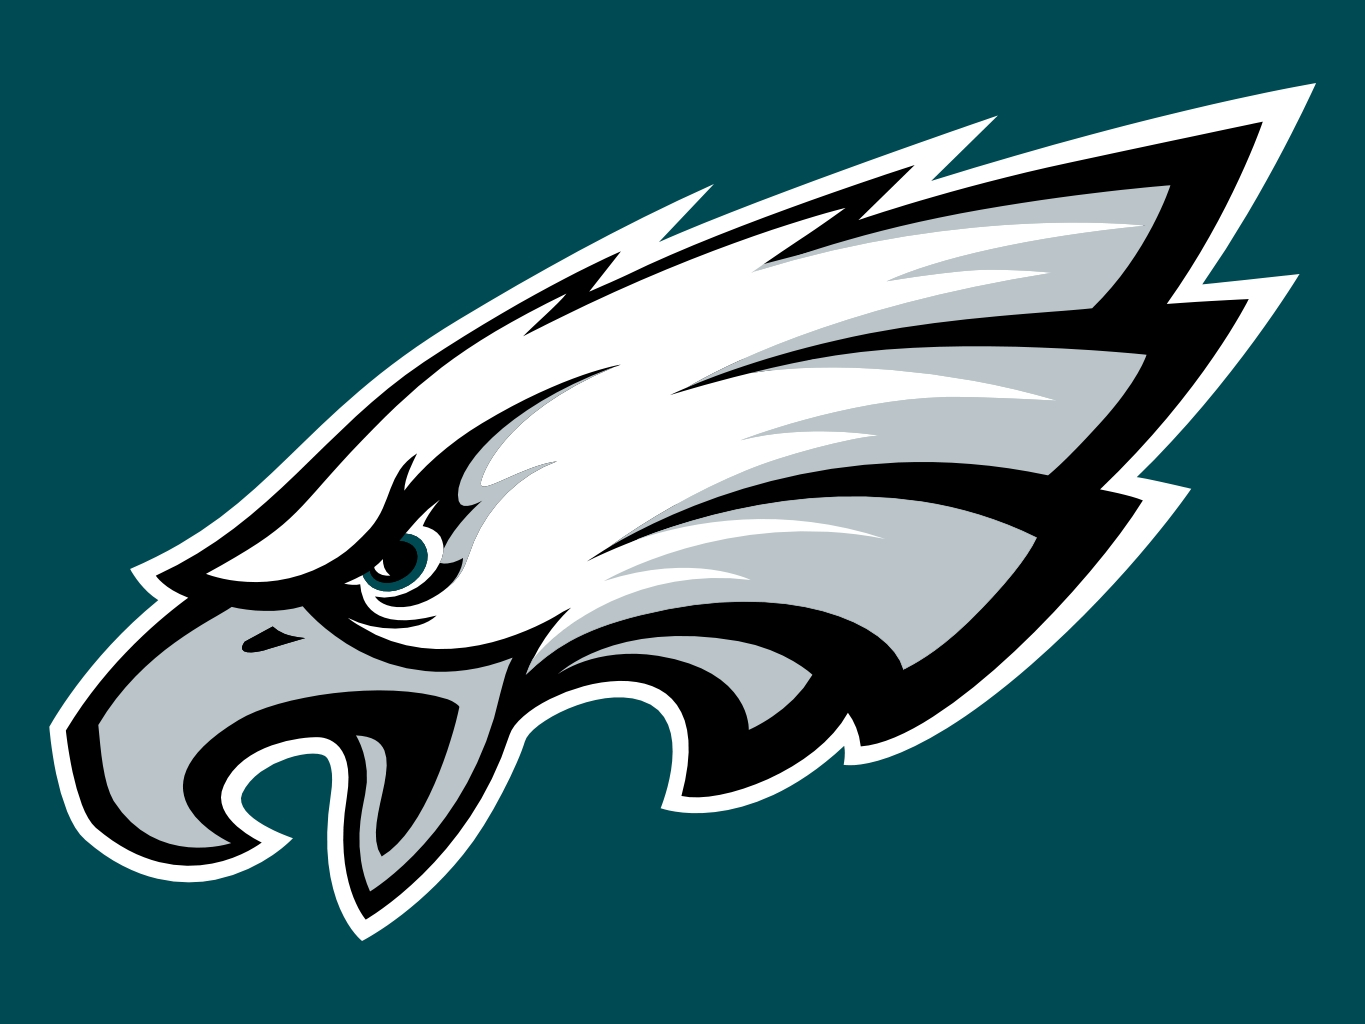 Philadelphia Eagles desktop computer wallpapers .